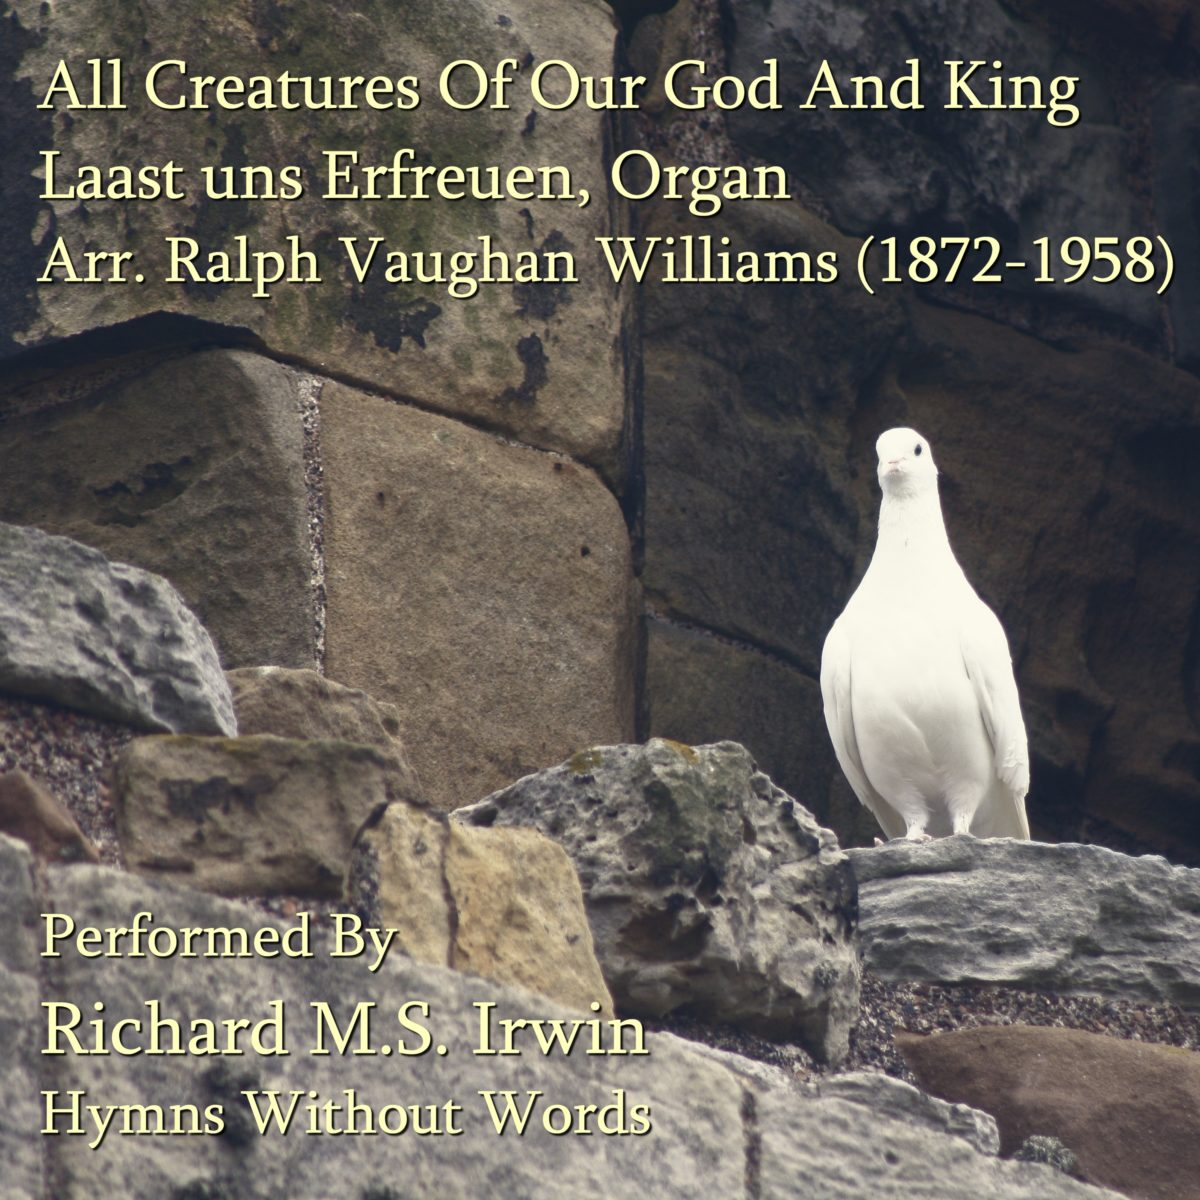 All Creatures Of Our God And King (Lasst Uns Erfreuen -7 Verses) – Organ